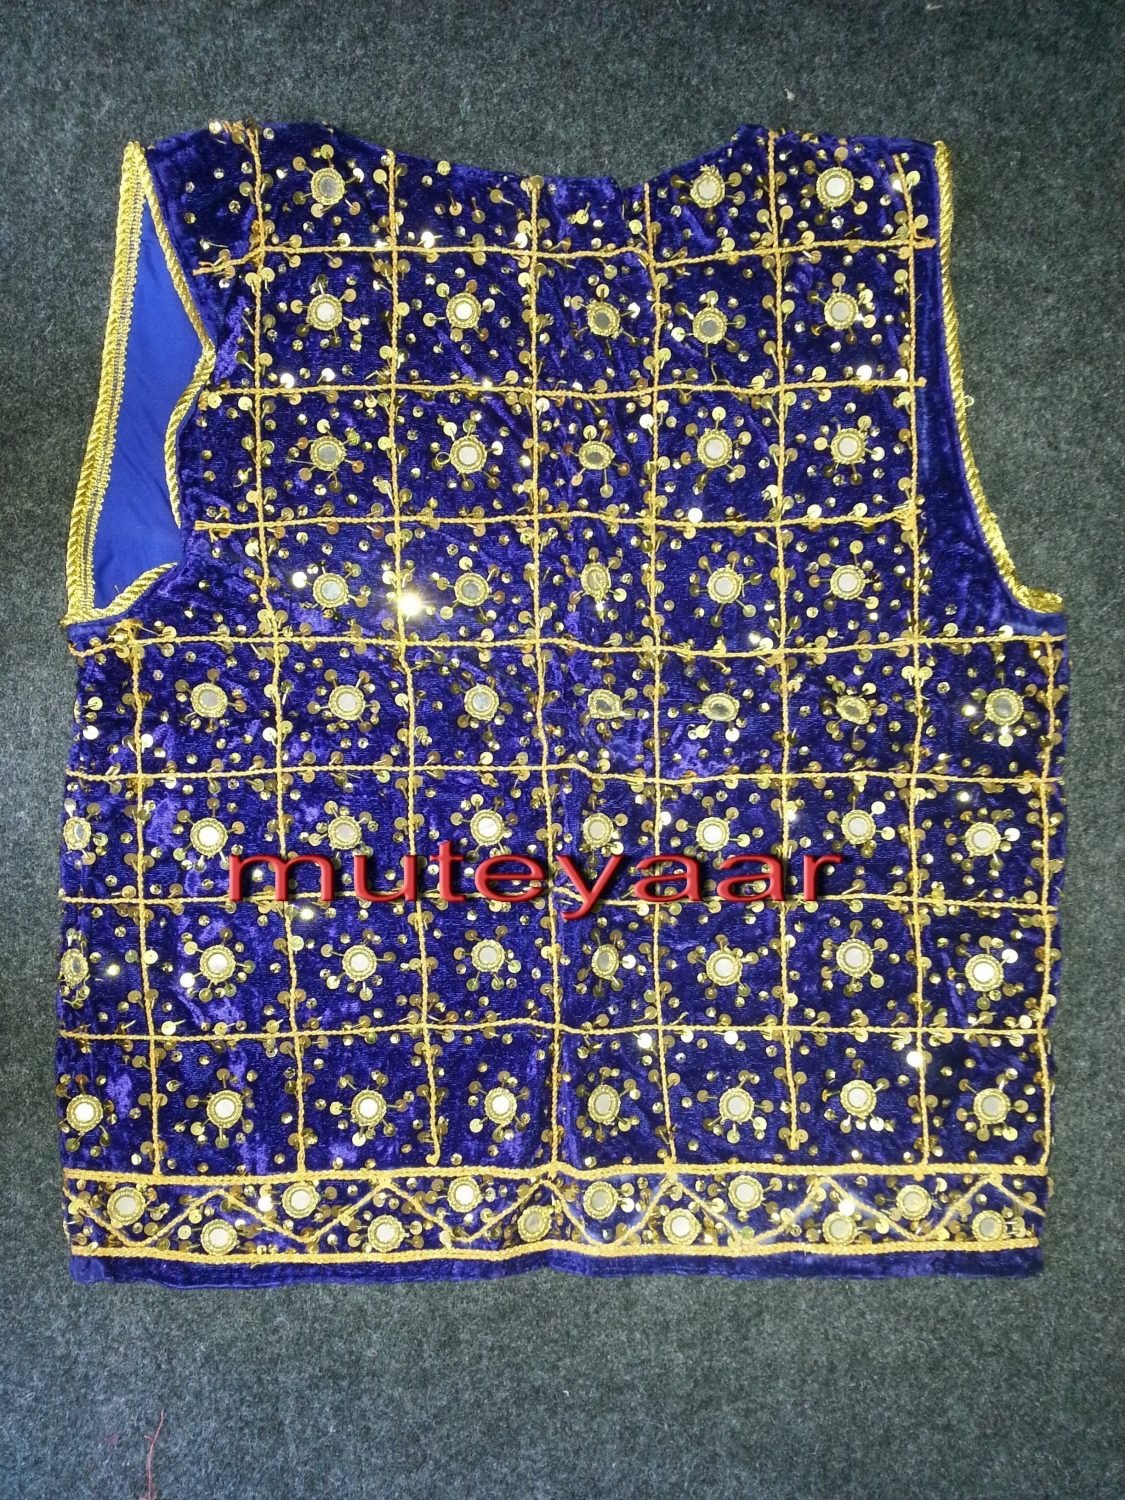 Jaal Embroidered BLUE vest for Bhangra dance costume  / outfit 2